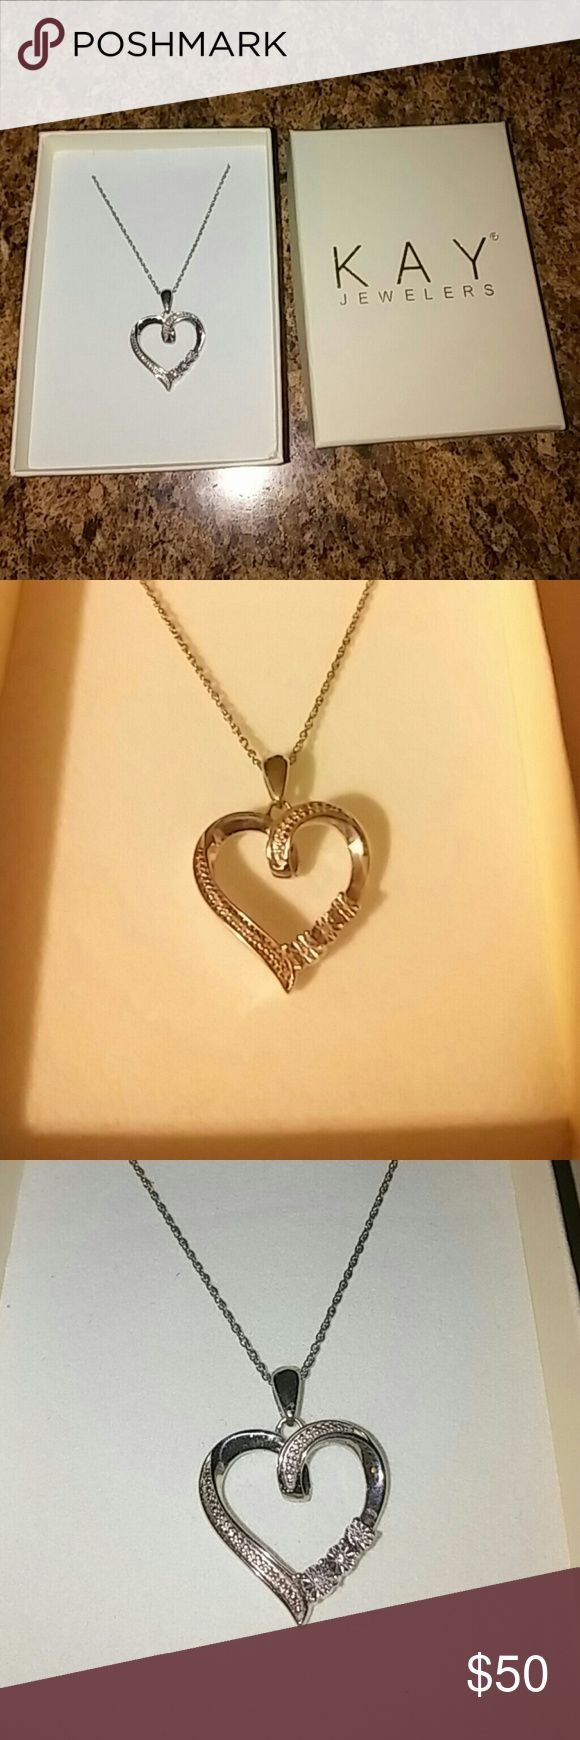 Kay jeweler diamond necklace Silver and diamond heart necklace from kay jewelers Jewelry Necklaces